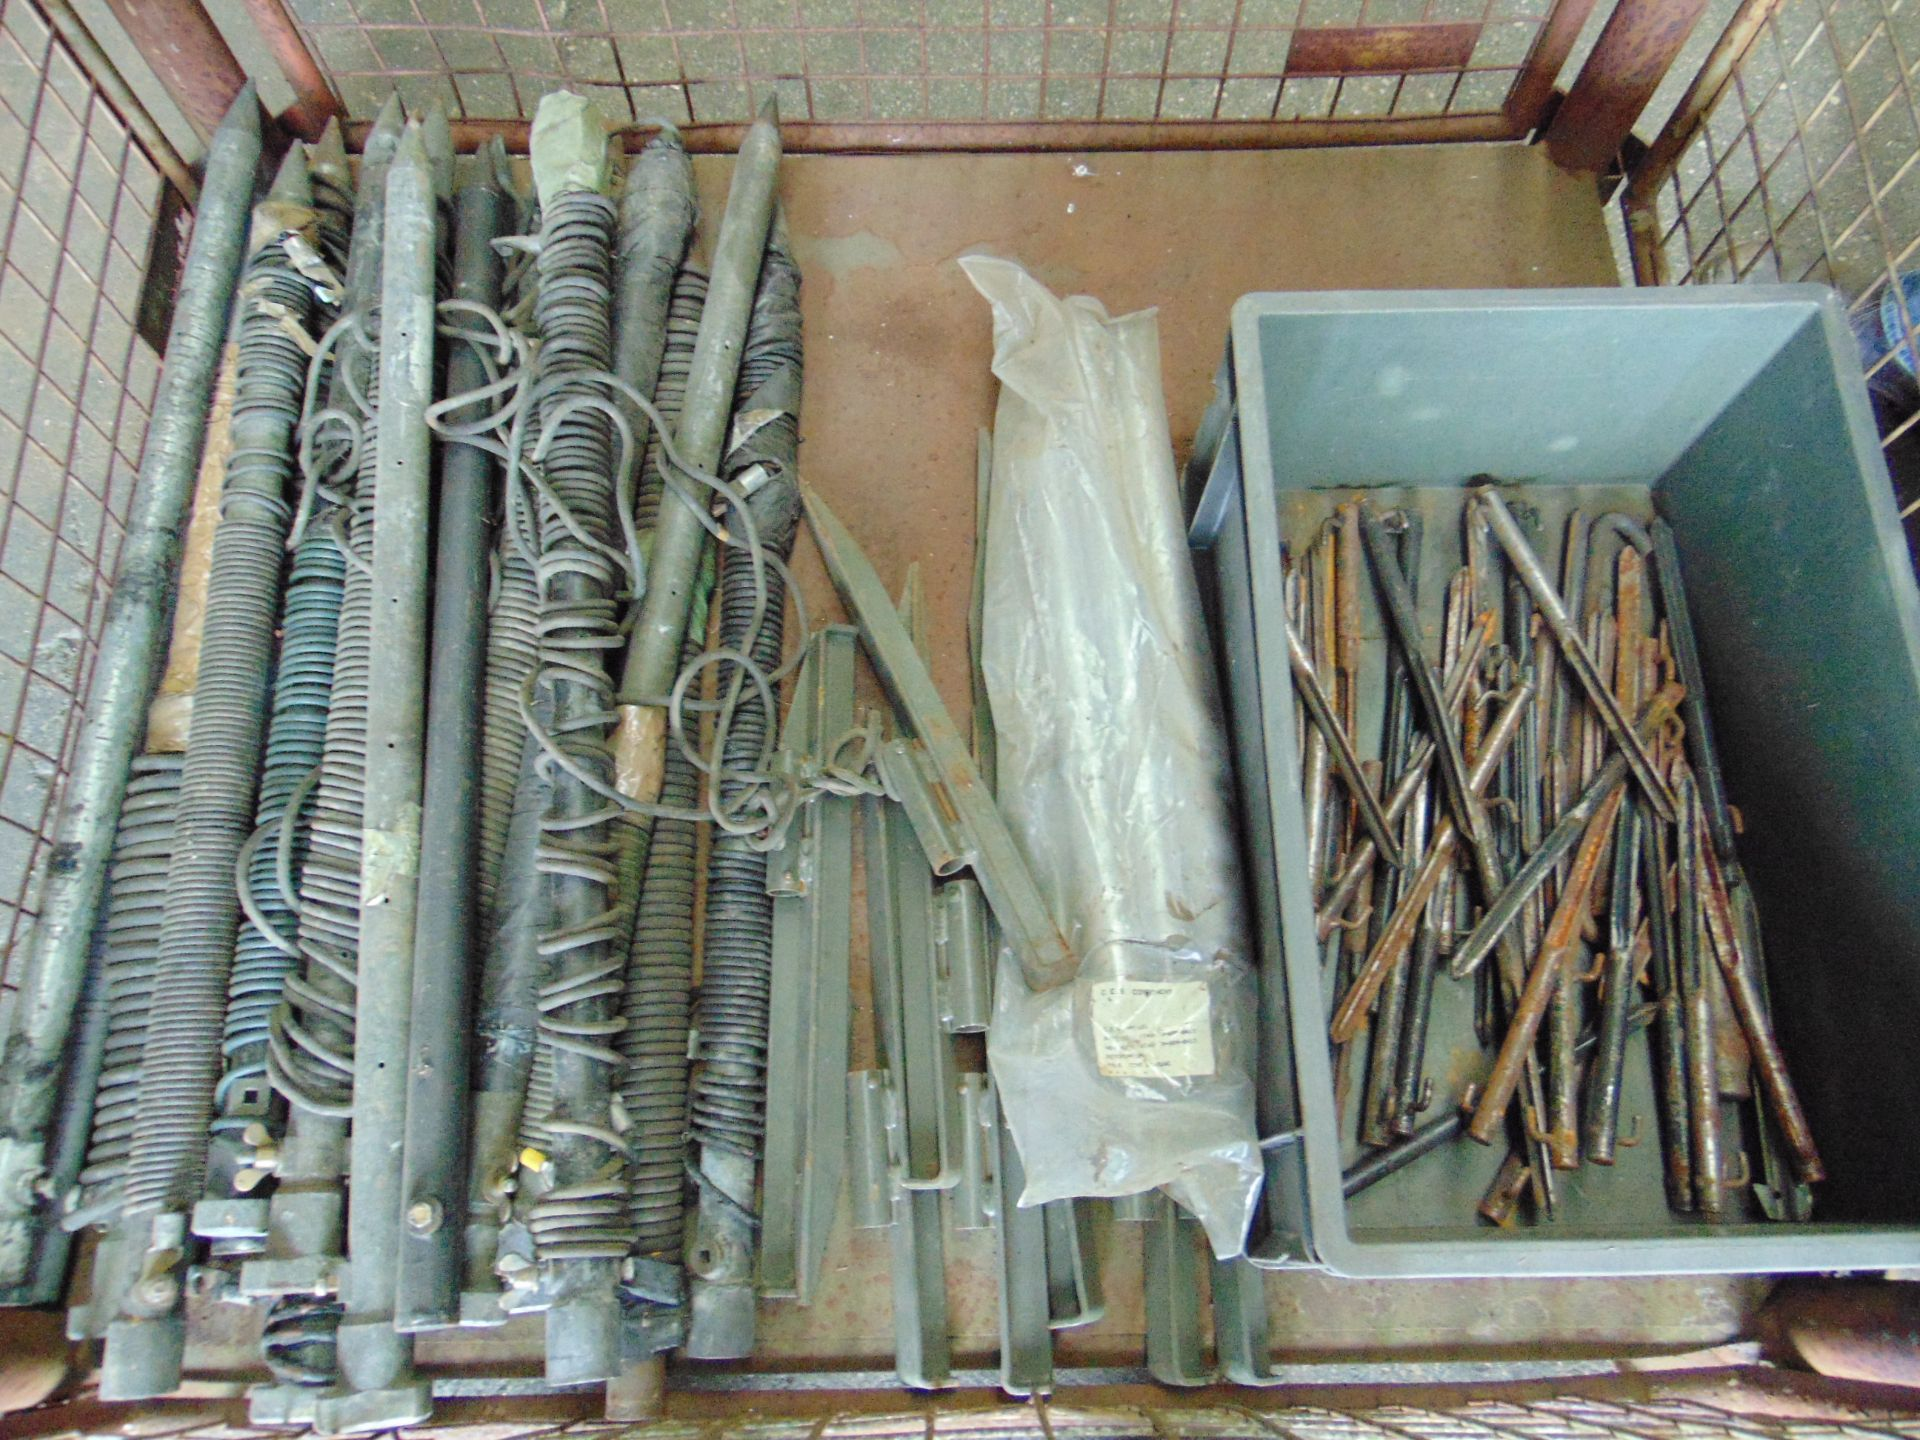 Lot 112 - Mixed Stillage including Tent Pegs, Earthing Spikes etc